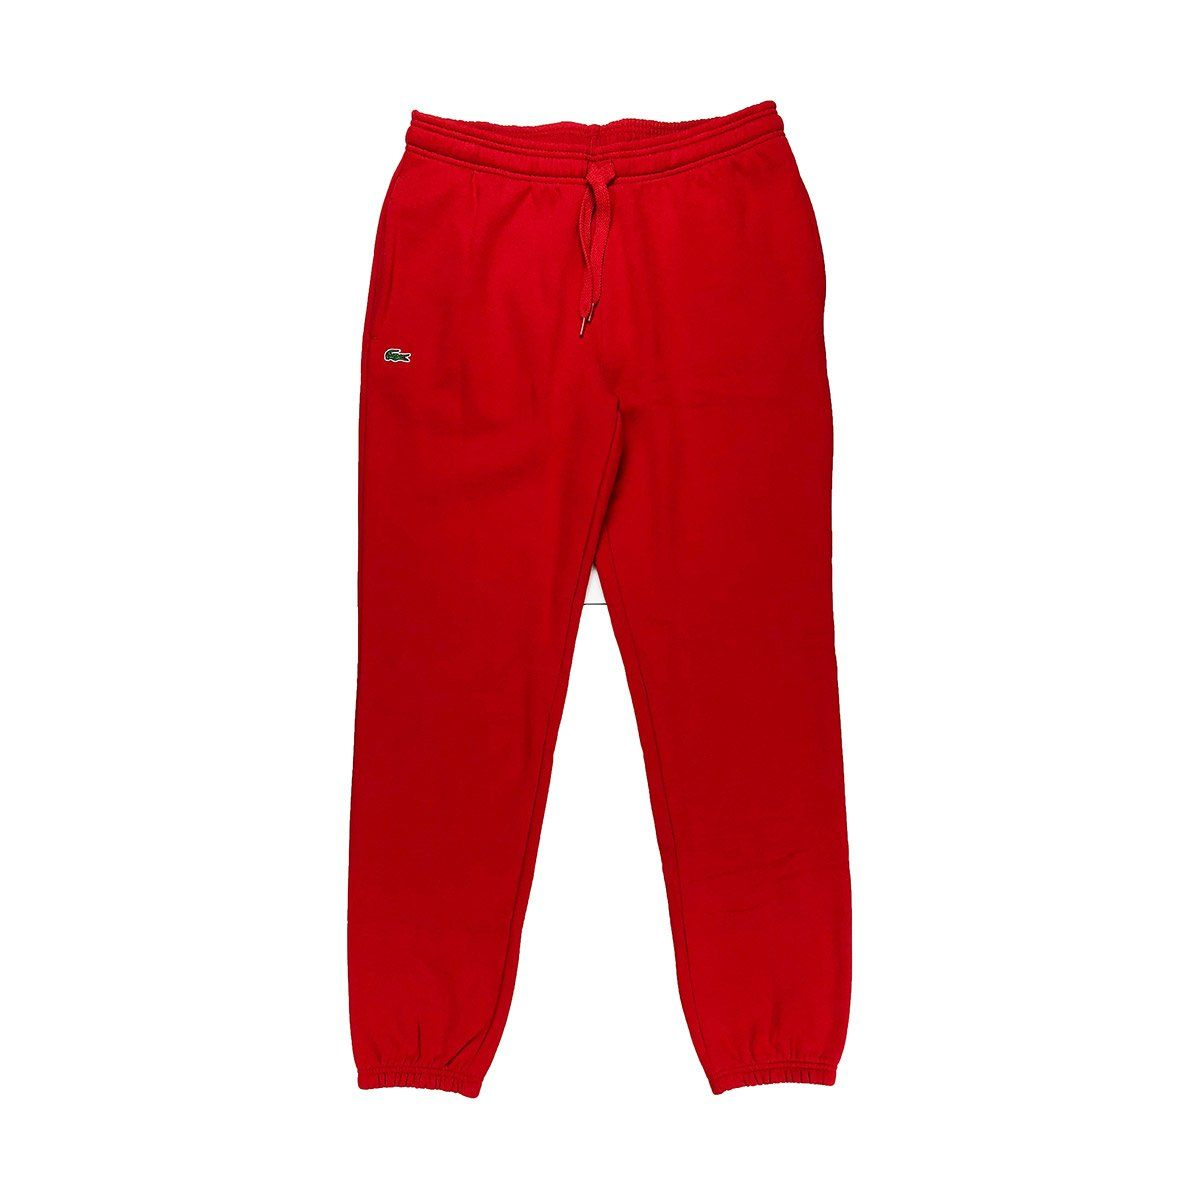 Lacoste sport tennis fleece track pants pinterest